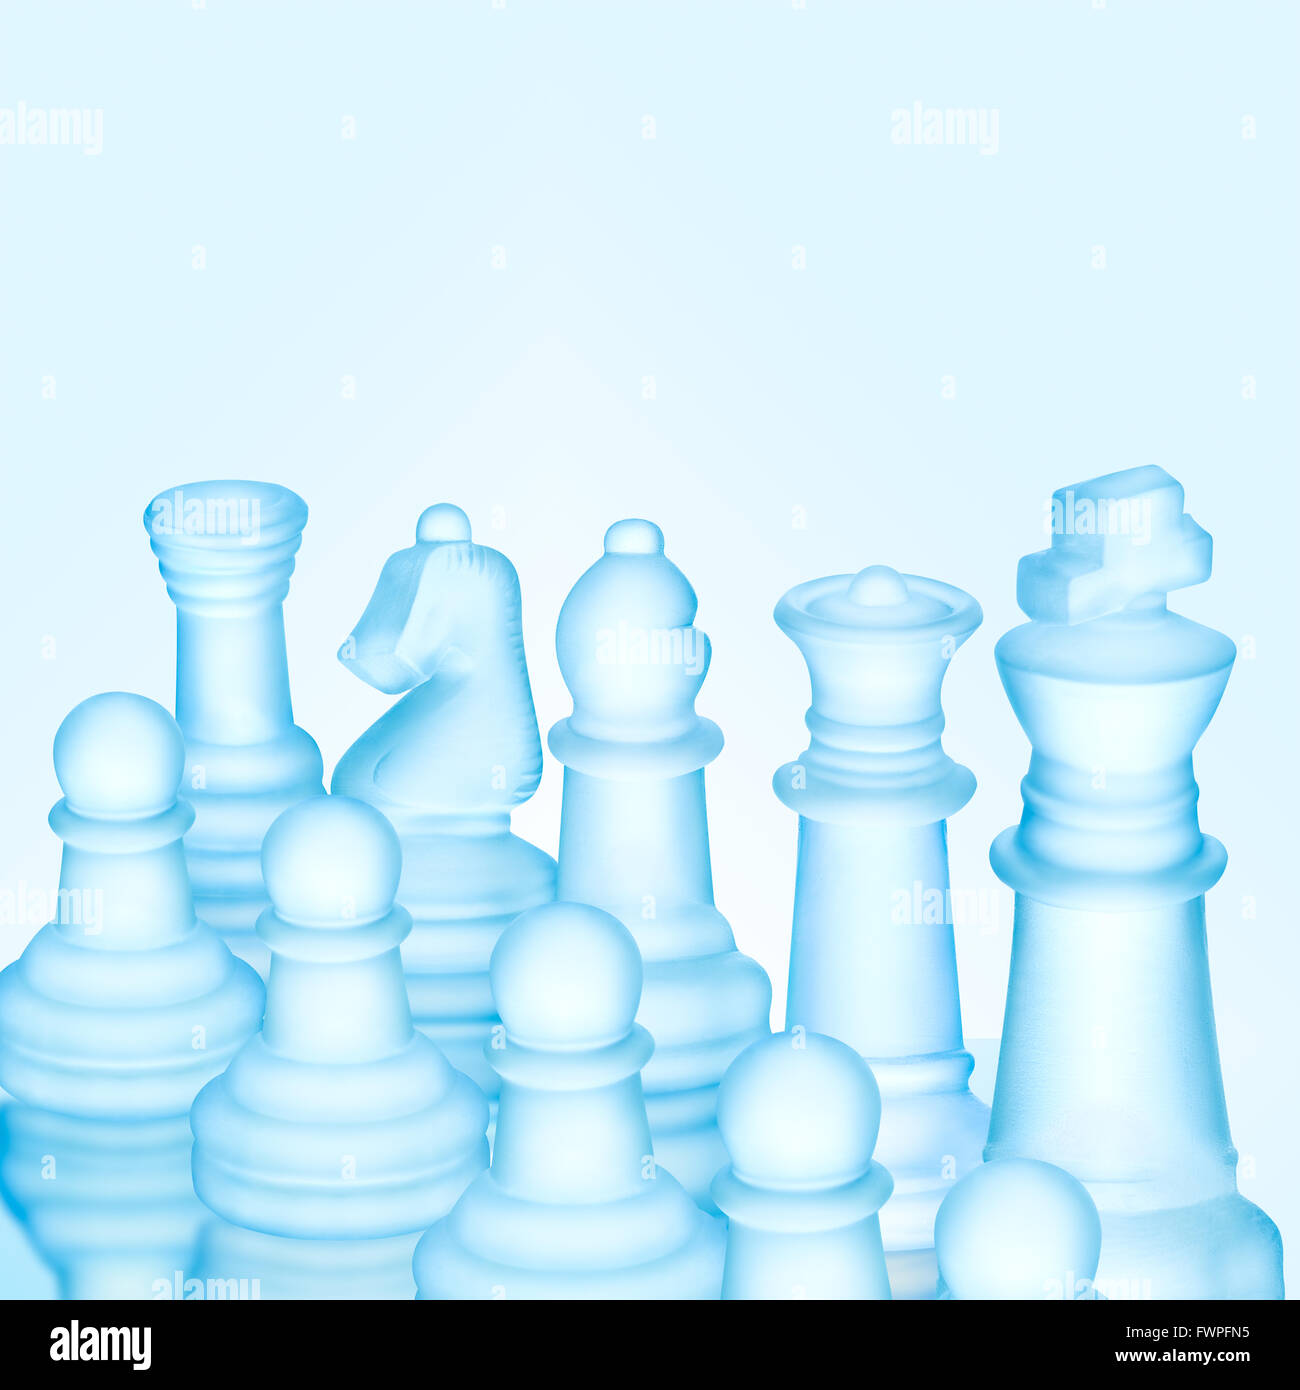 Strategy and tactics concept; icy frosted chess figures standing in a row ready for game - Stock Image